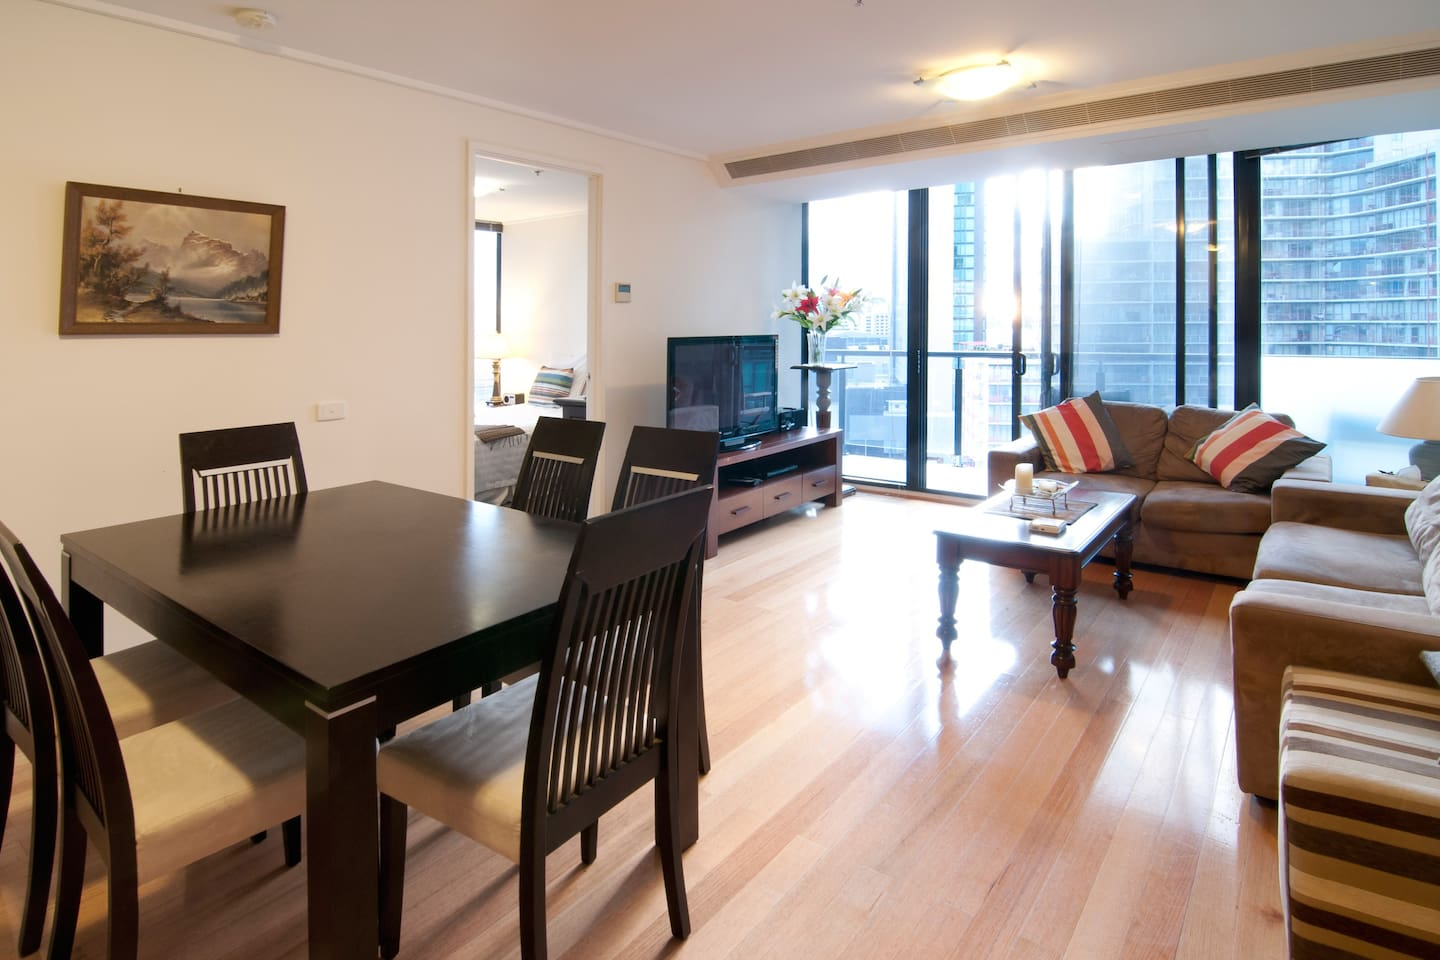 Spacious living room with 6 seater dining set